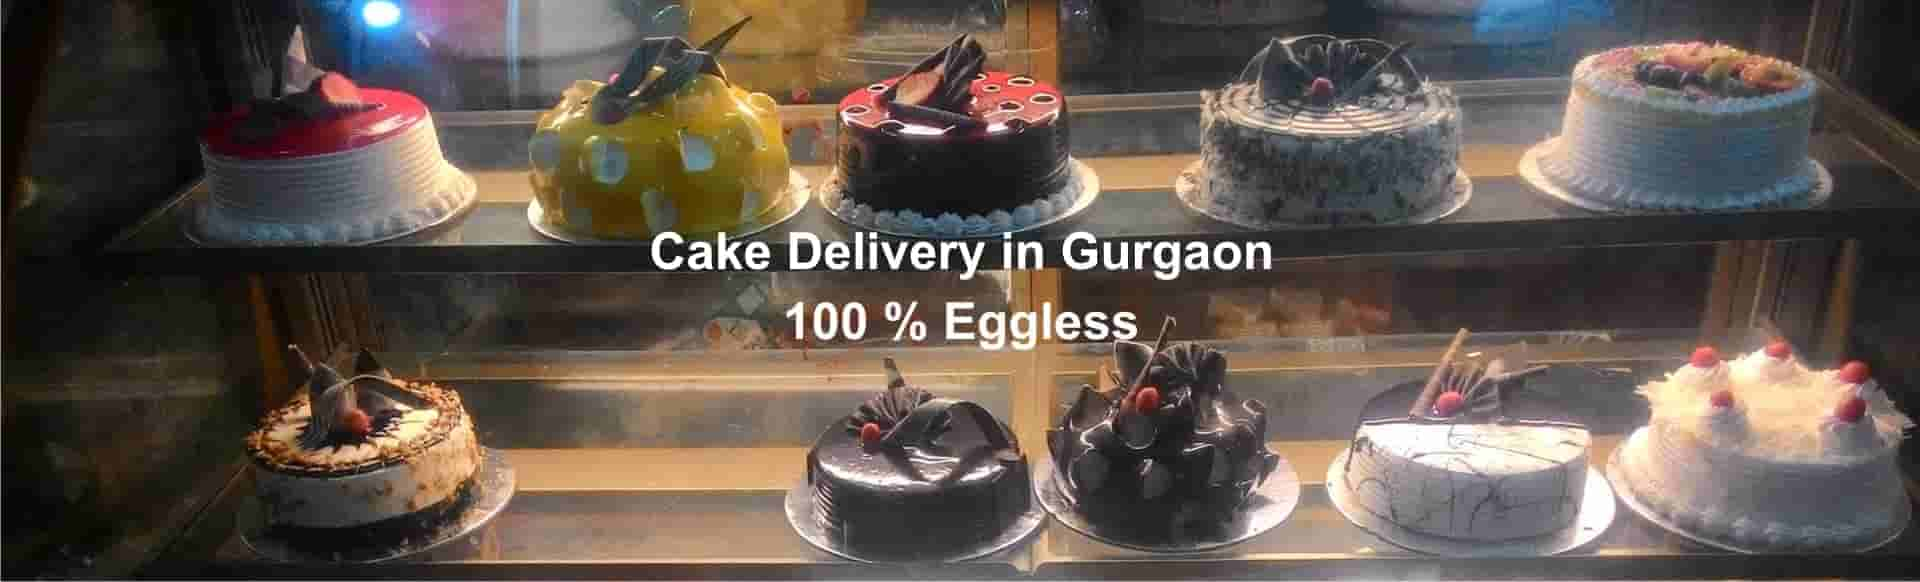 cake-delivery-in-gurgaon